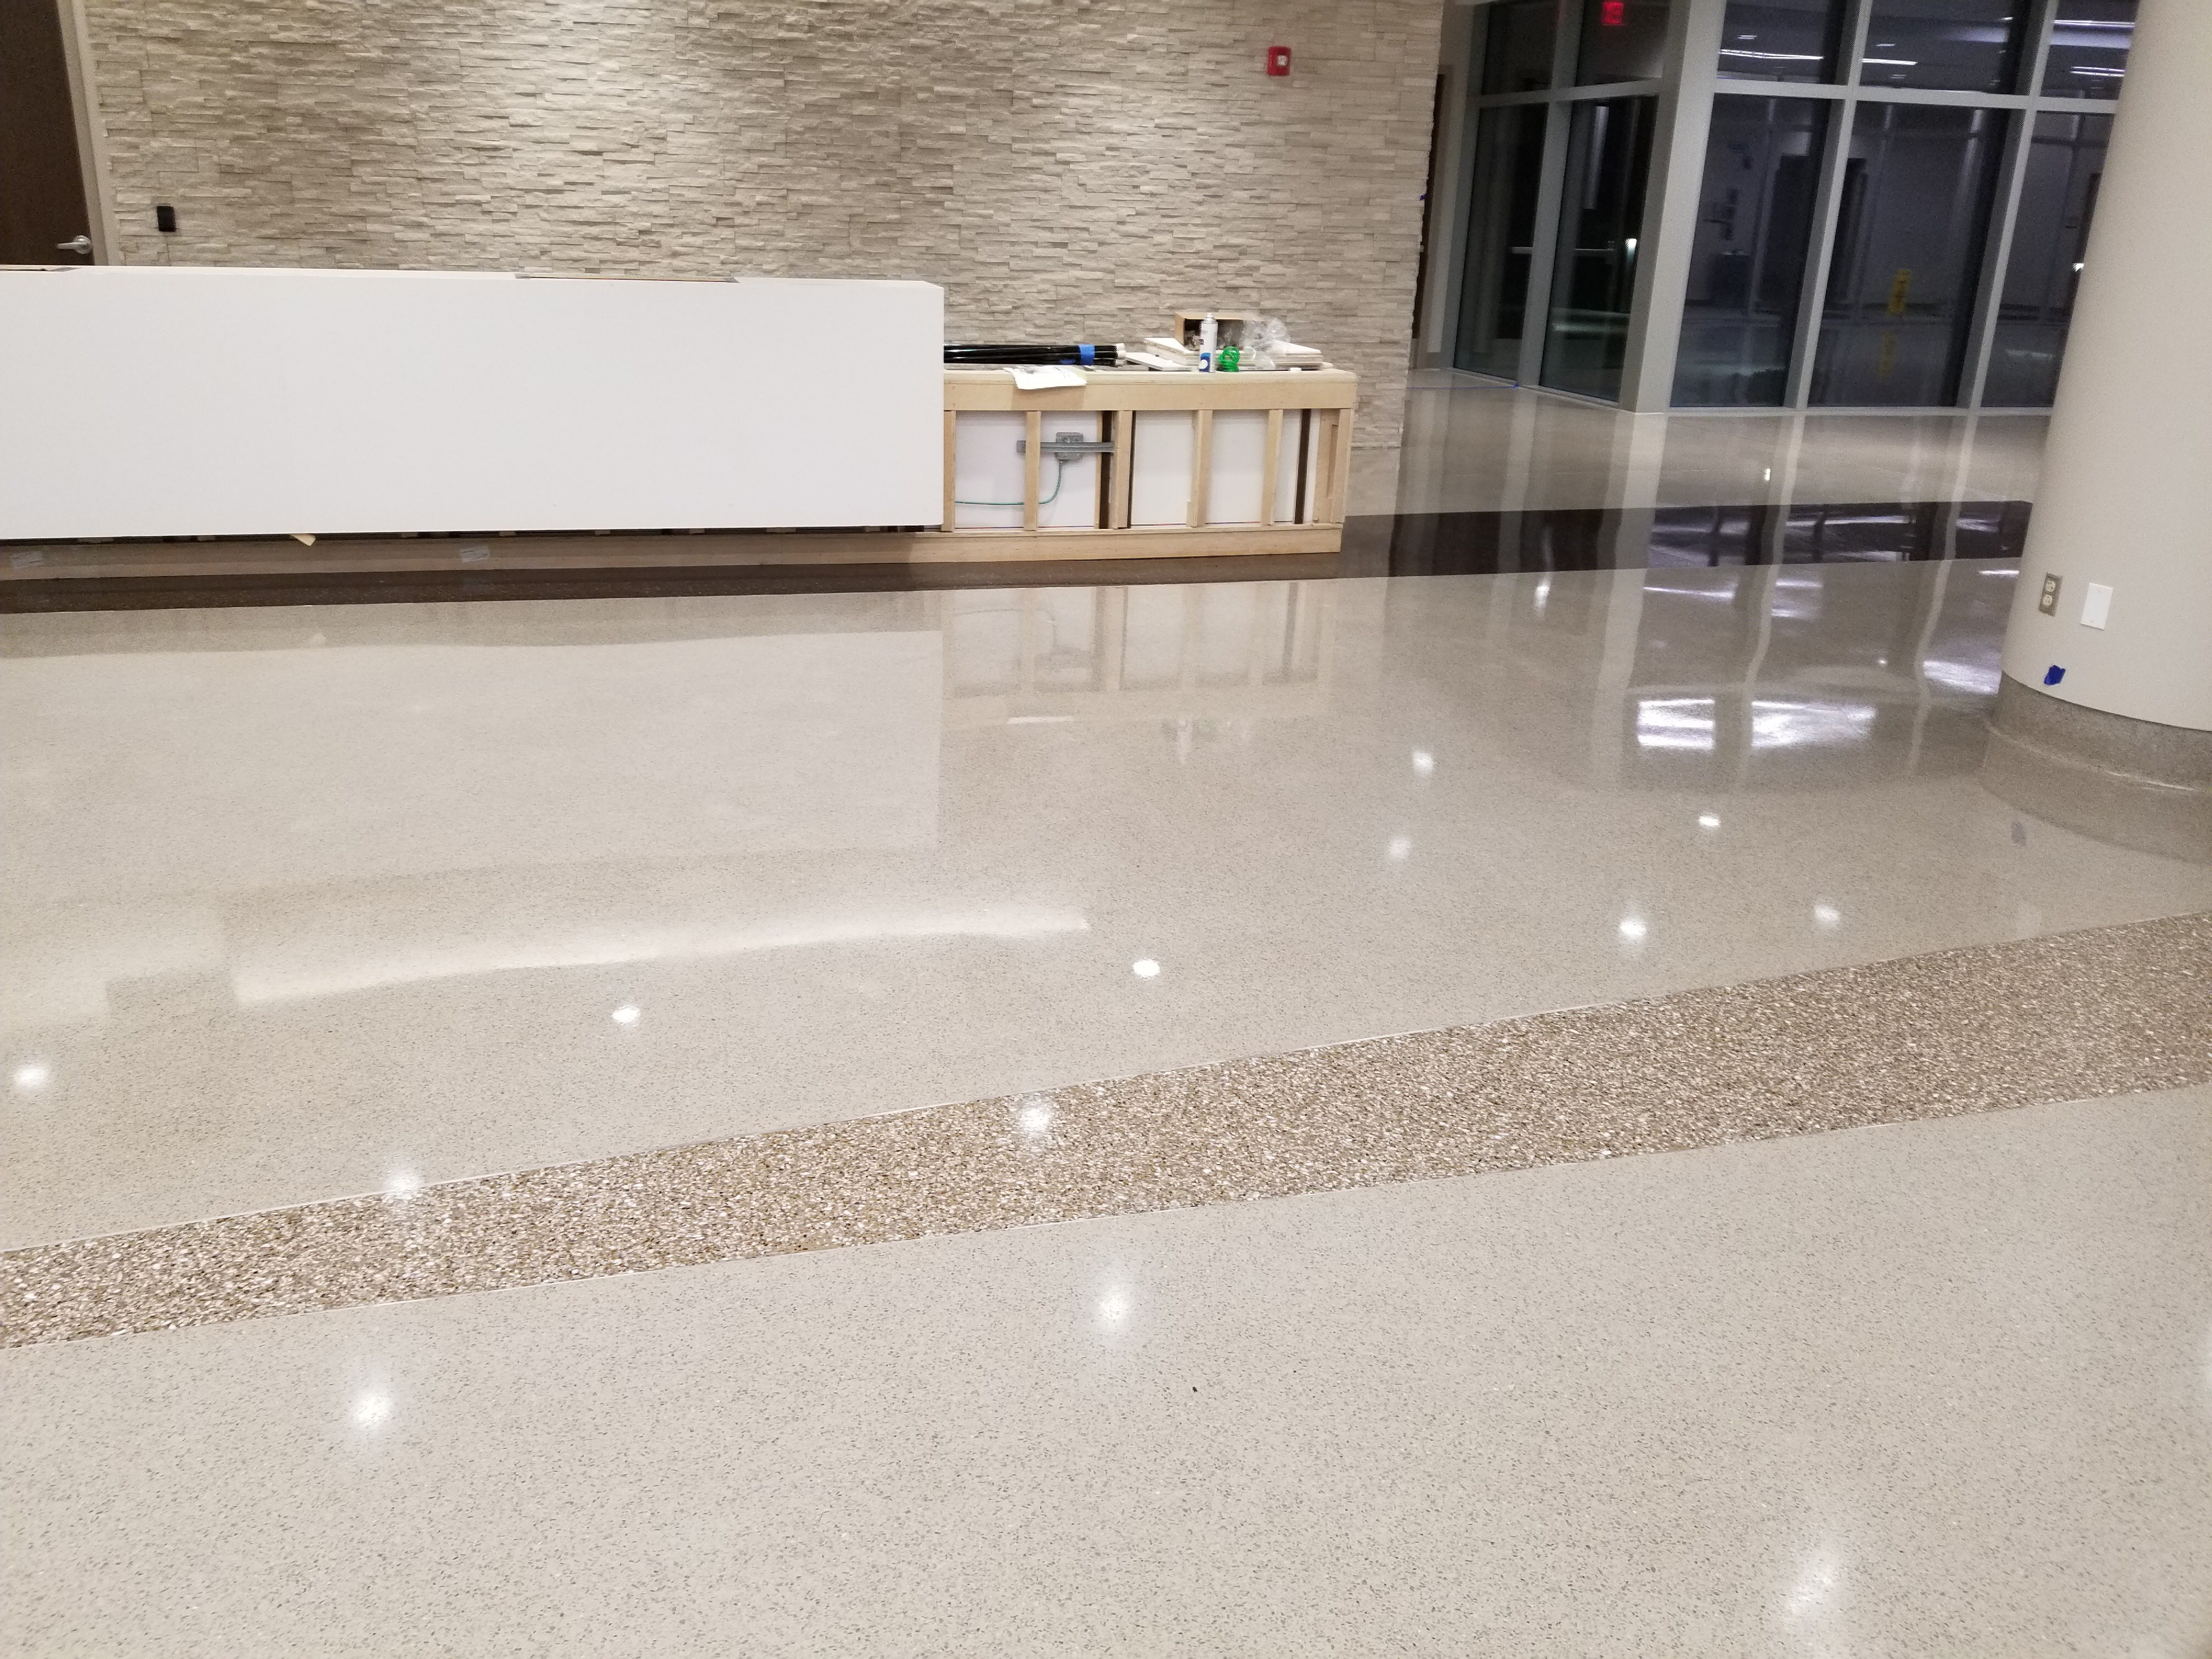 BlackRock Industrial Hospital Lobby Floors